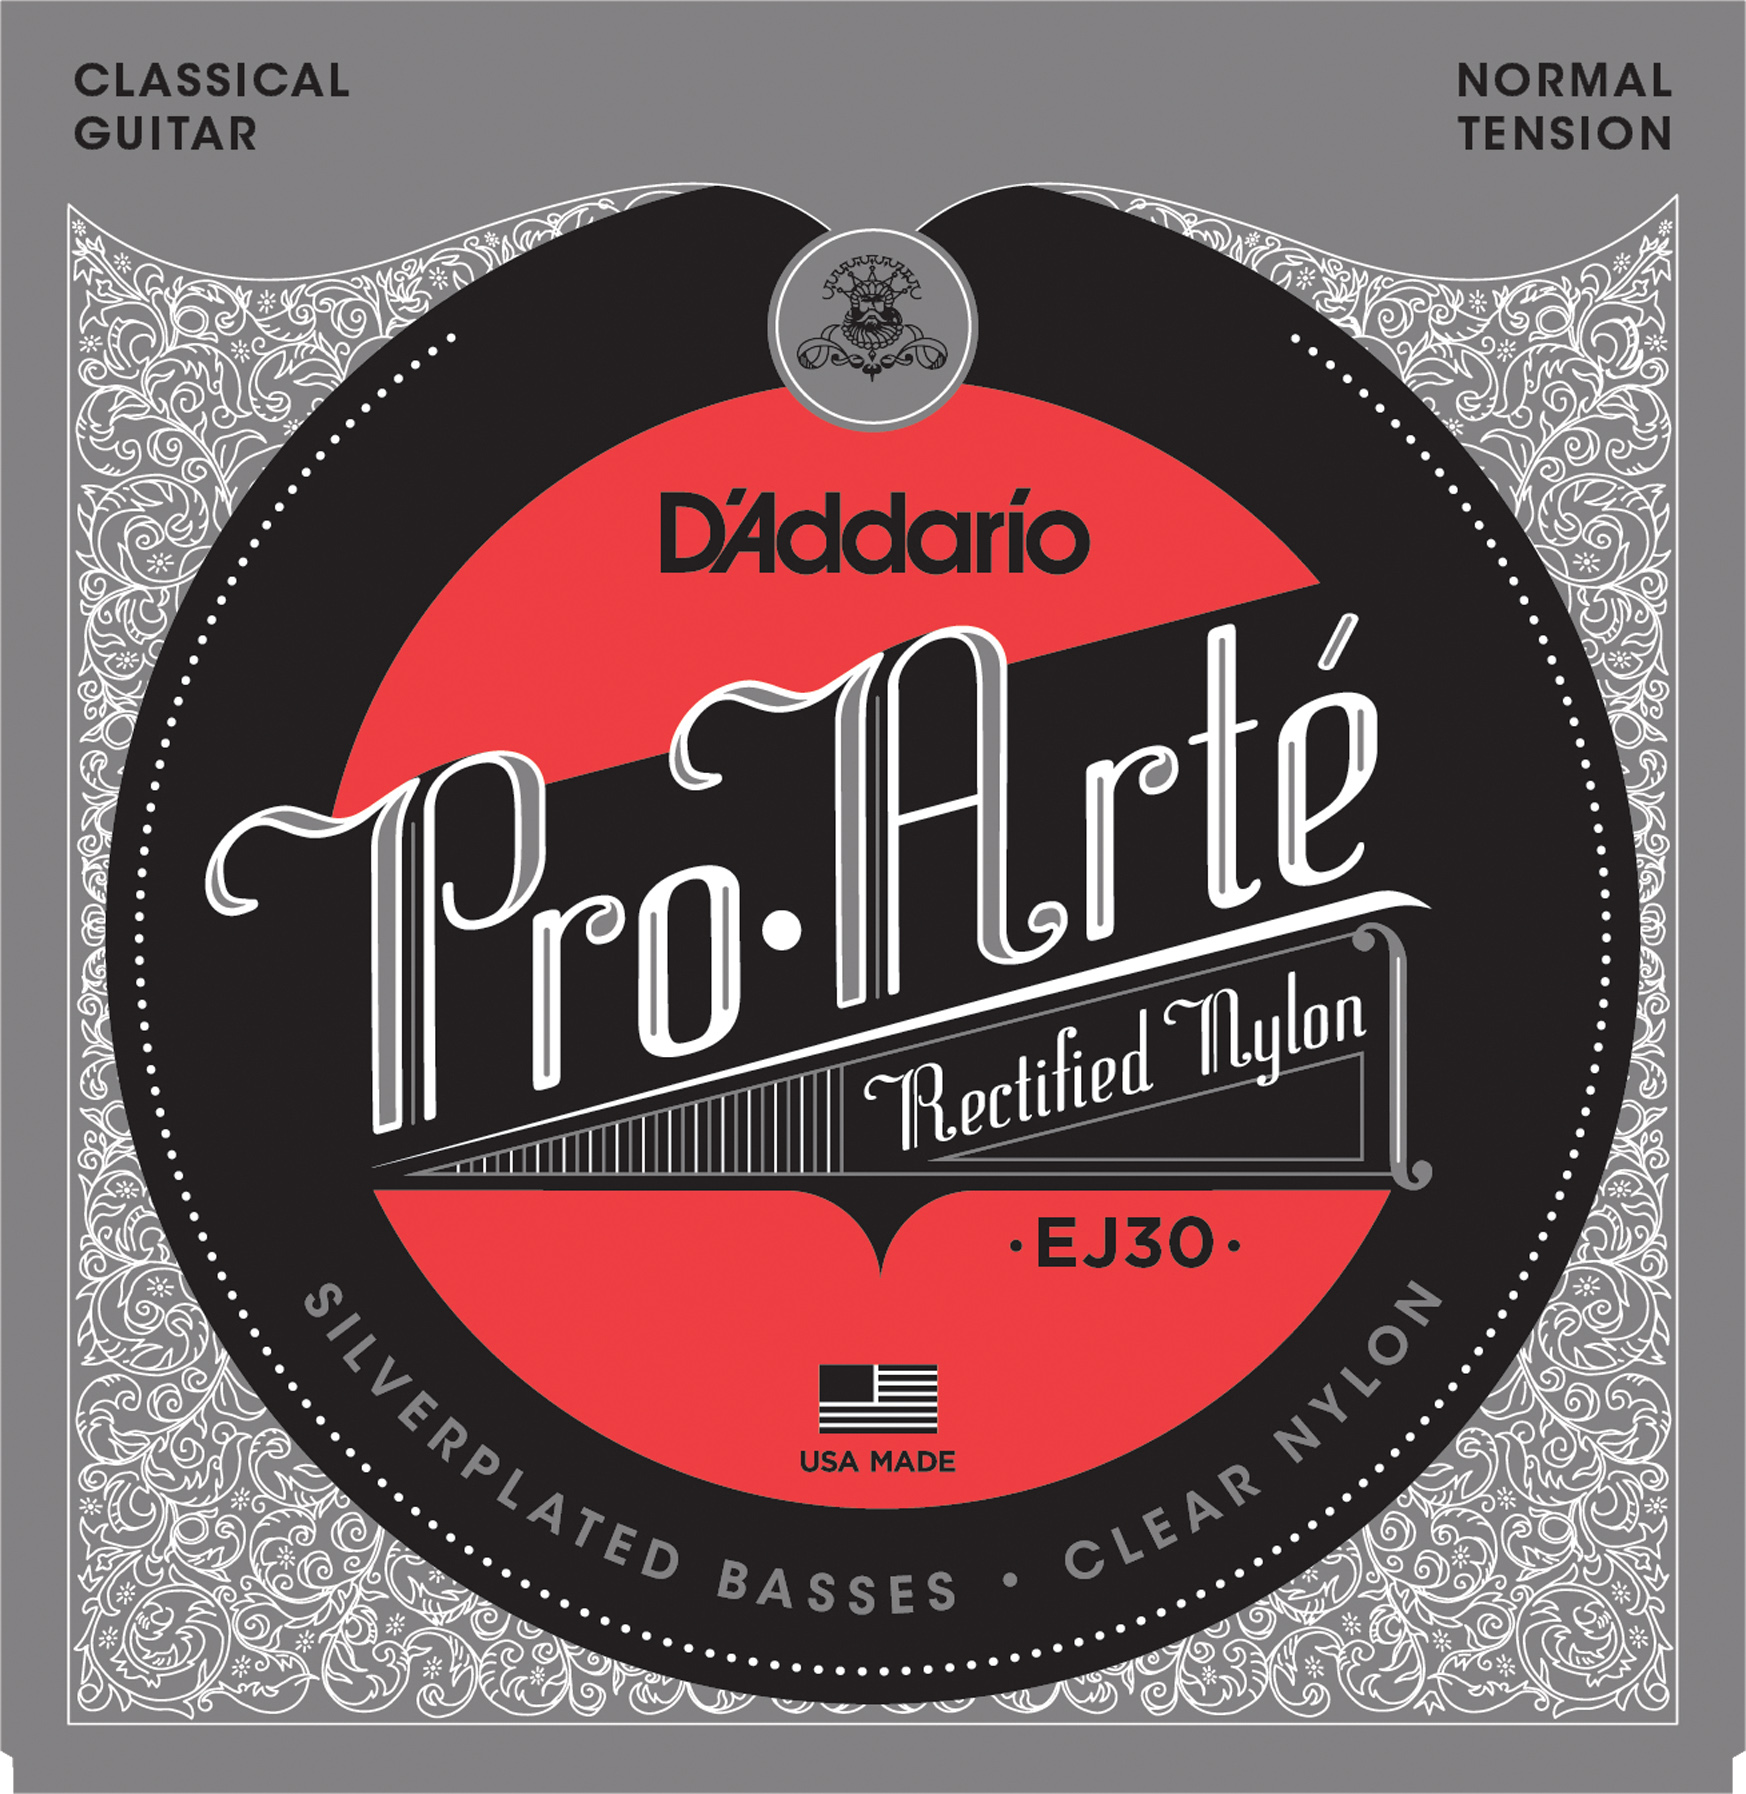 D'Addario Pro-Arte EJ30 Classical Guitar Strings, Rectified Trebles, Normal Tension